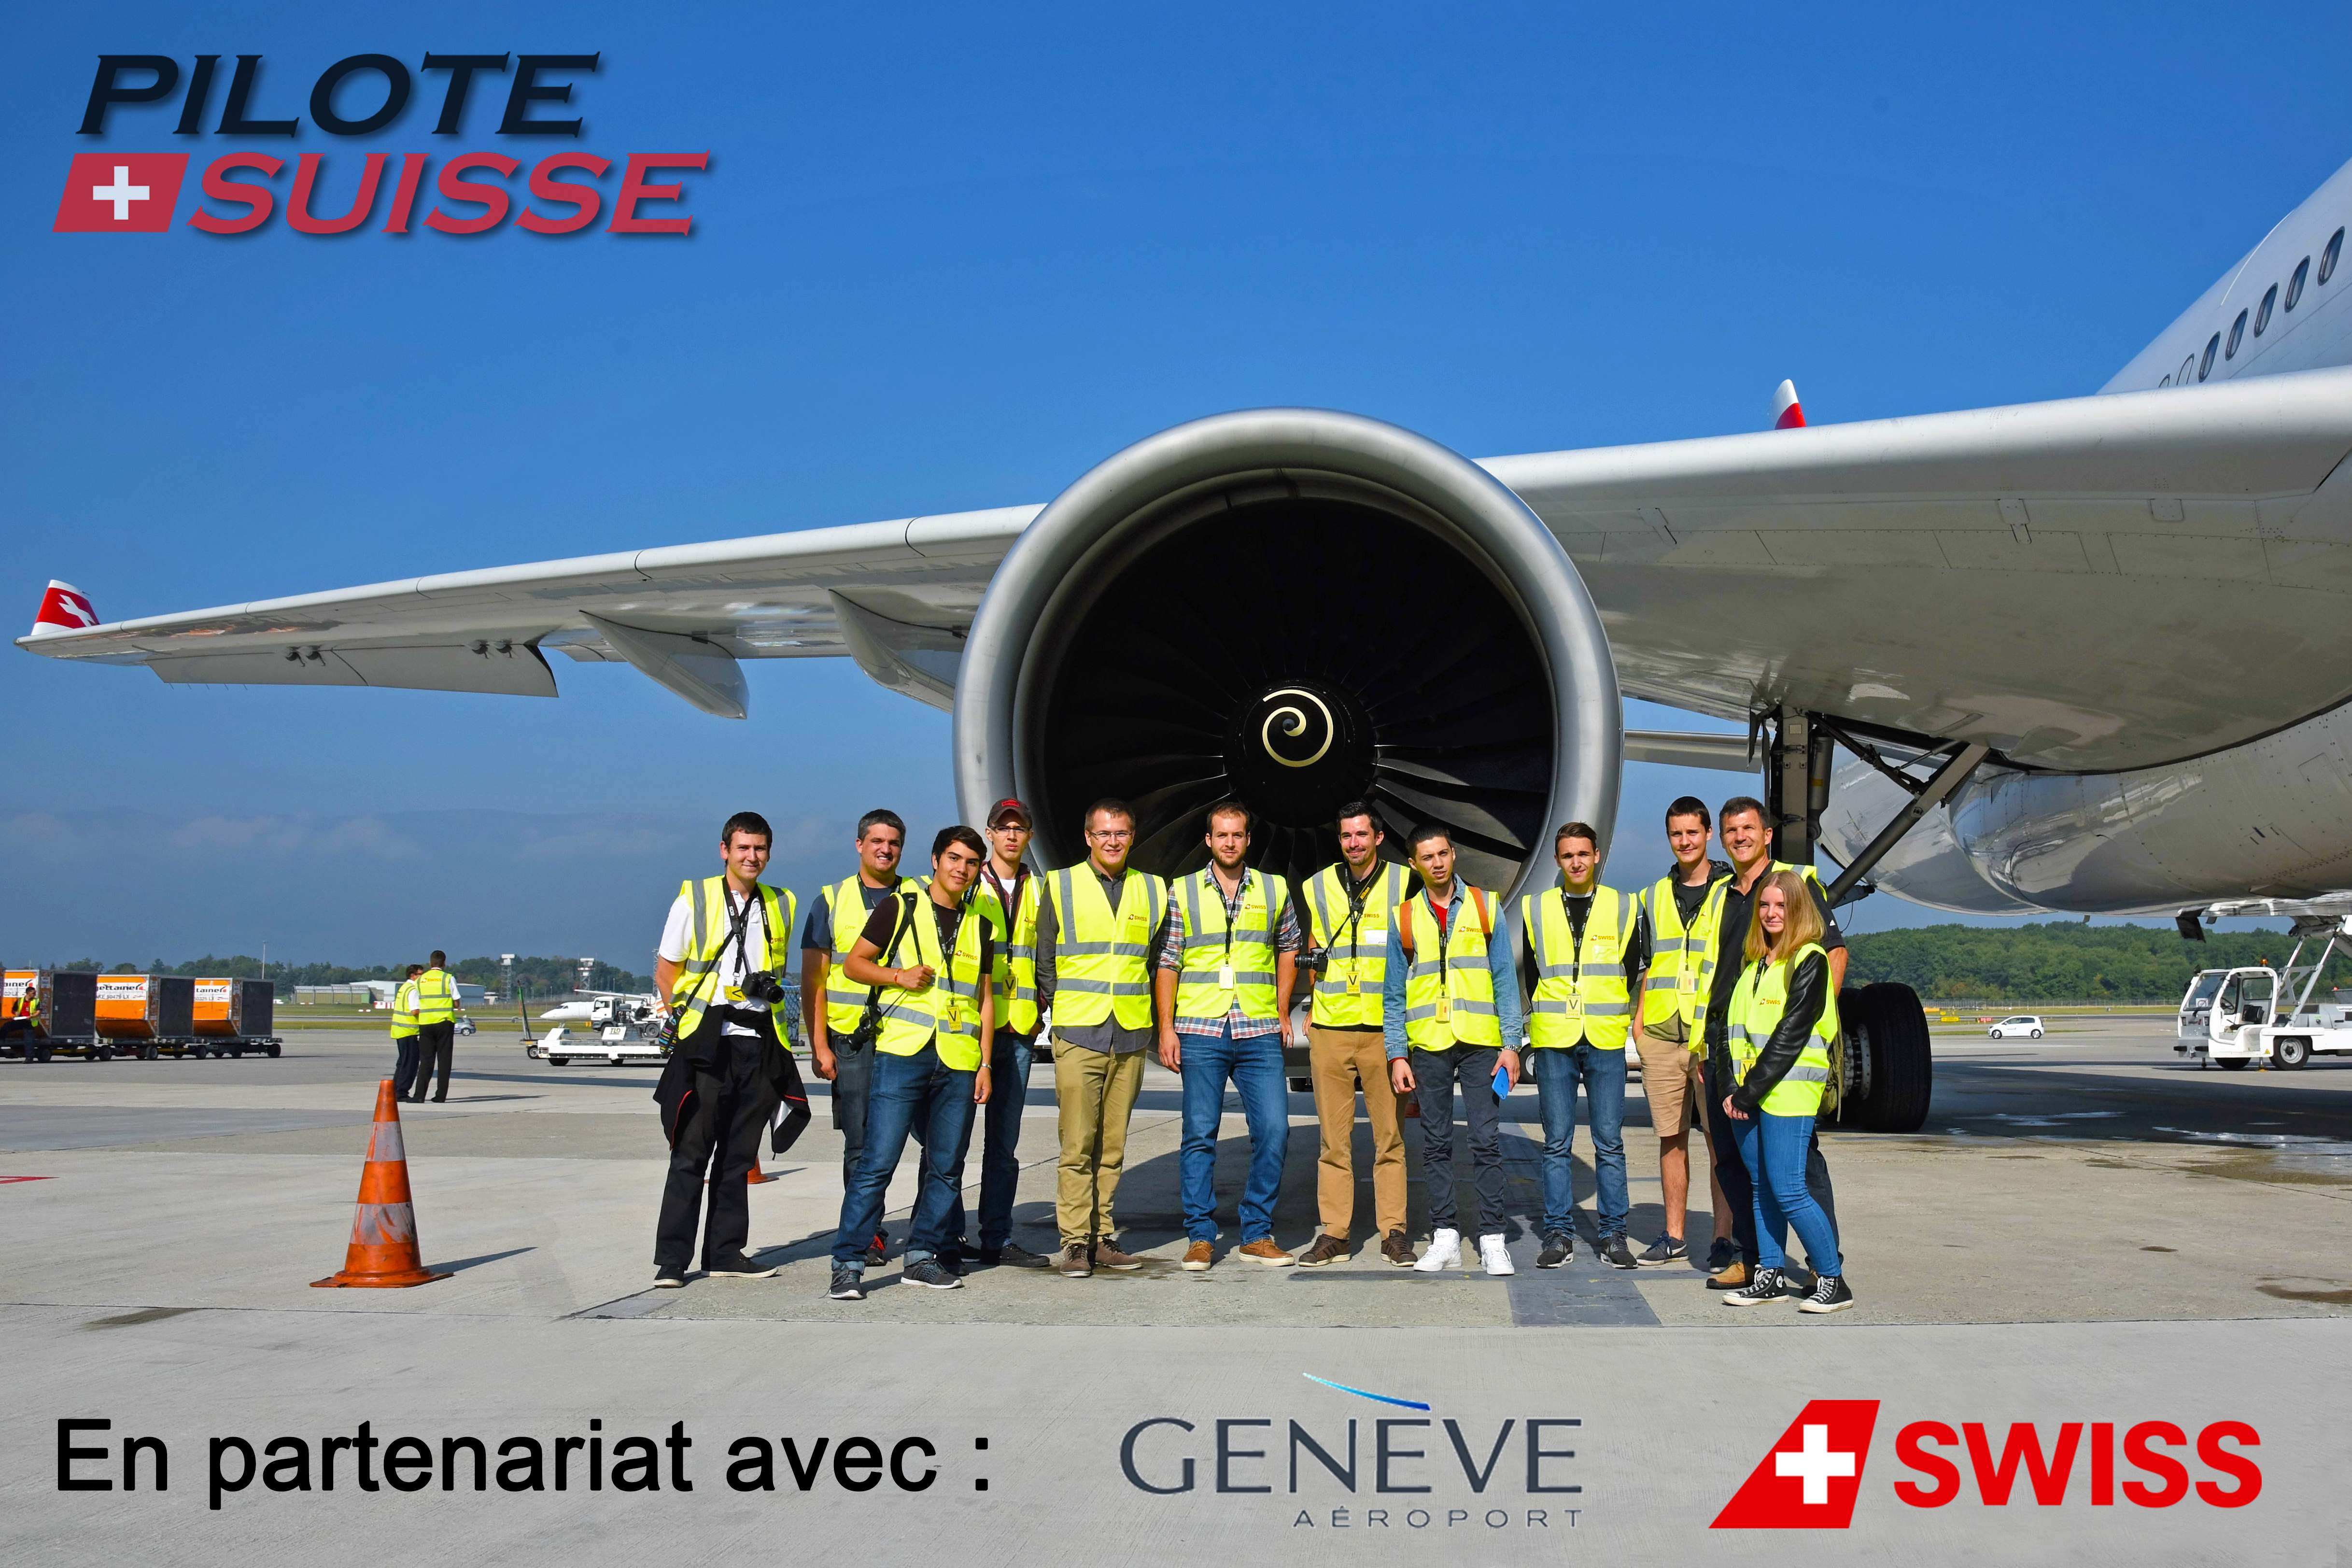 Geneve coupons